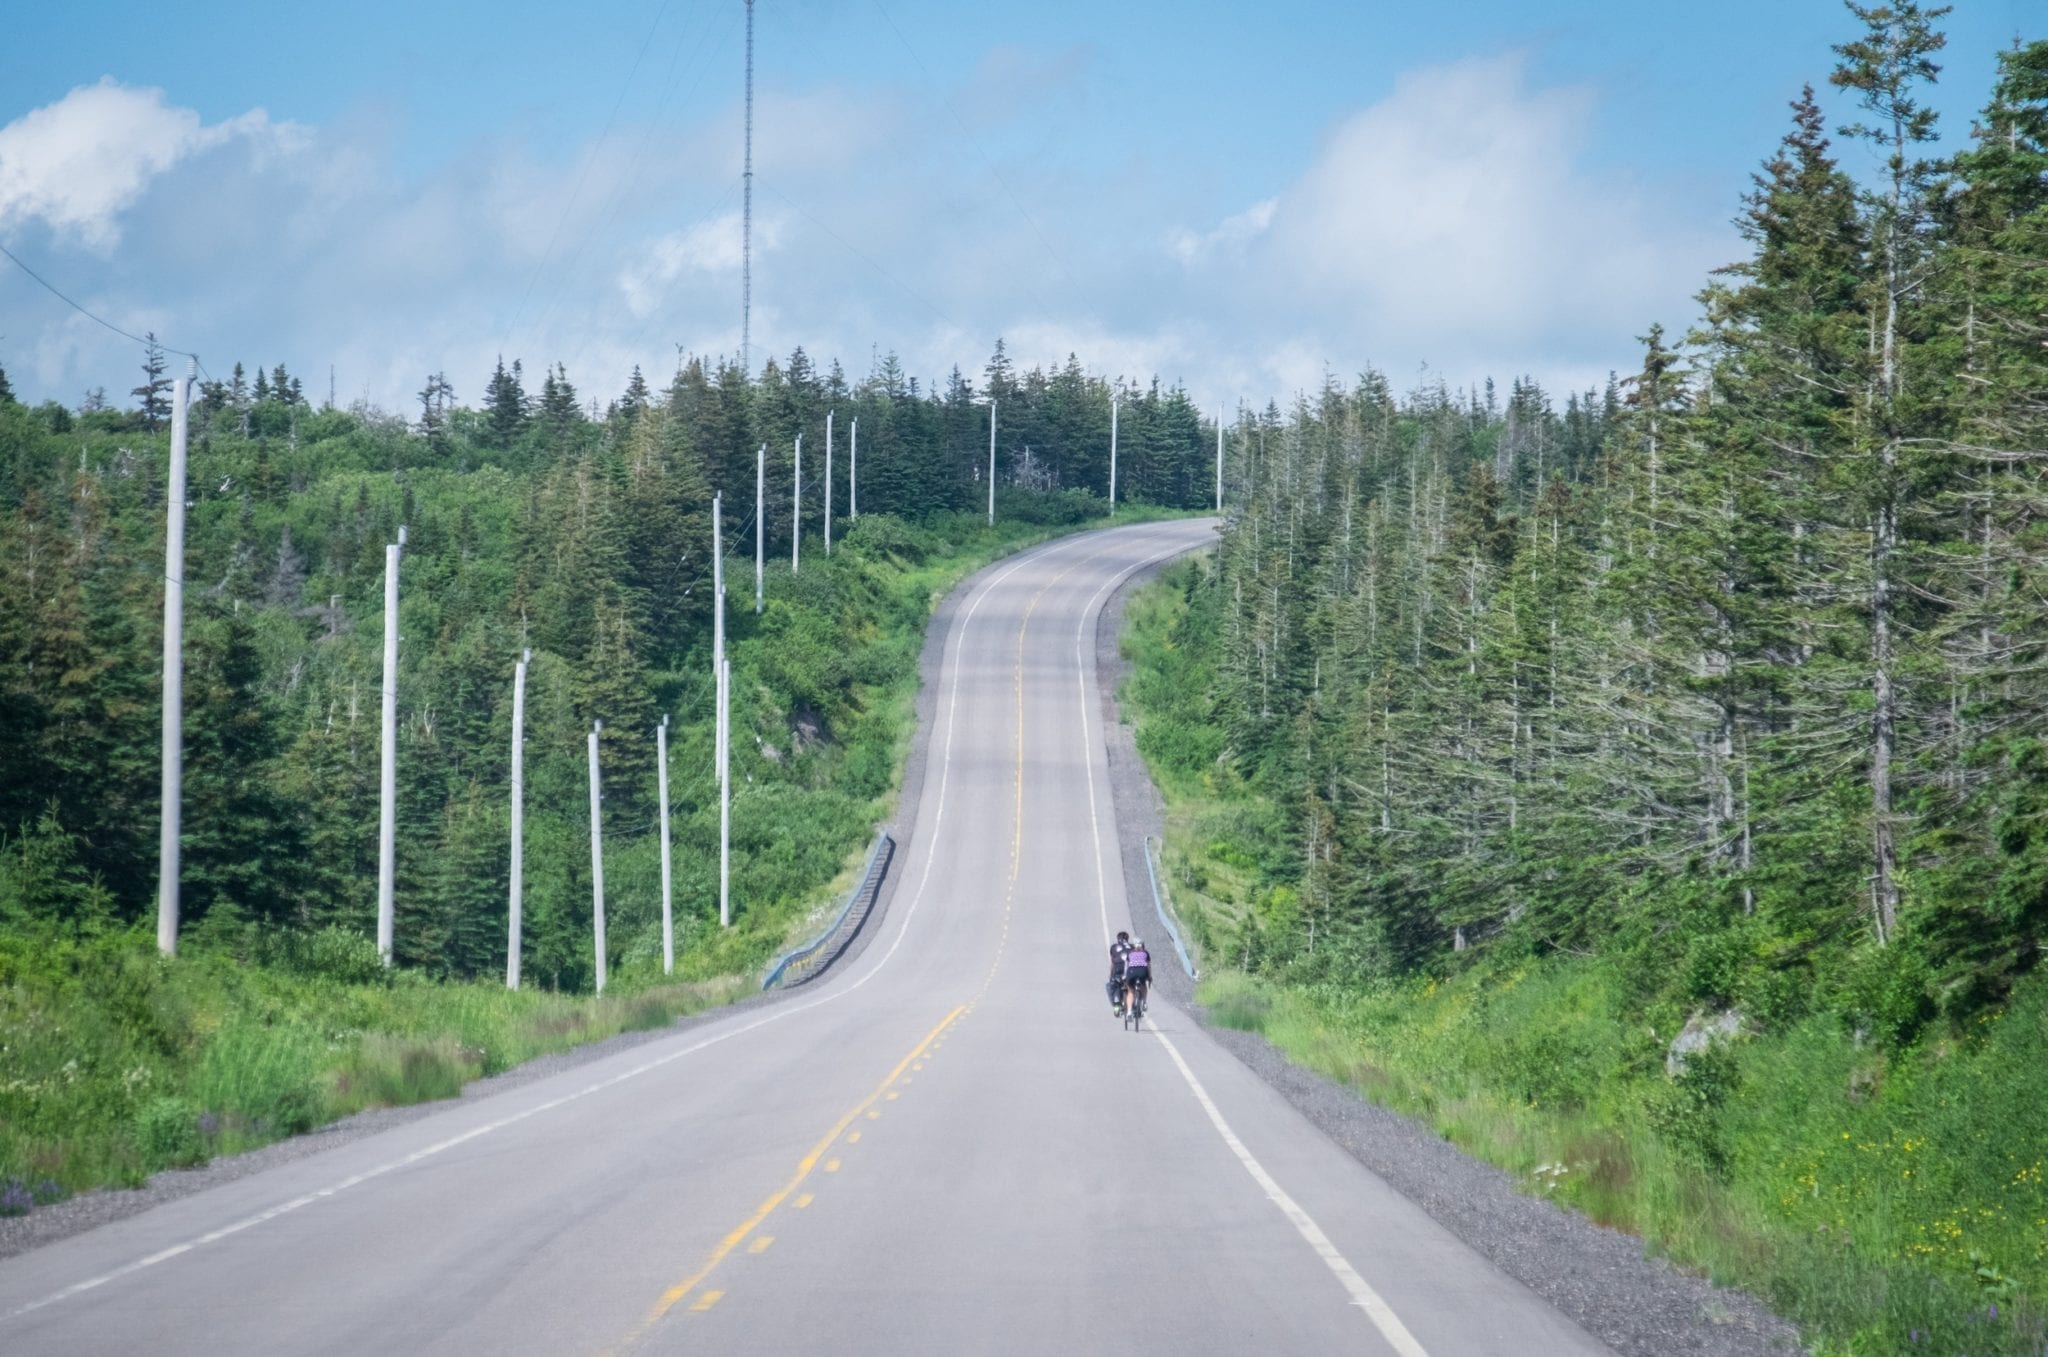 A road leading straight ahead, surrounded by pine trees. Two cyclists are riding along the road.